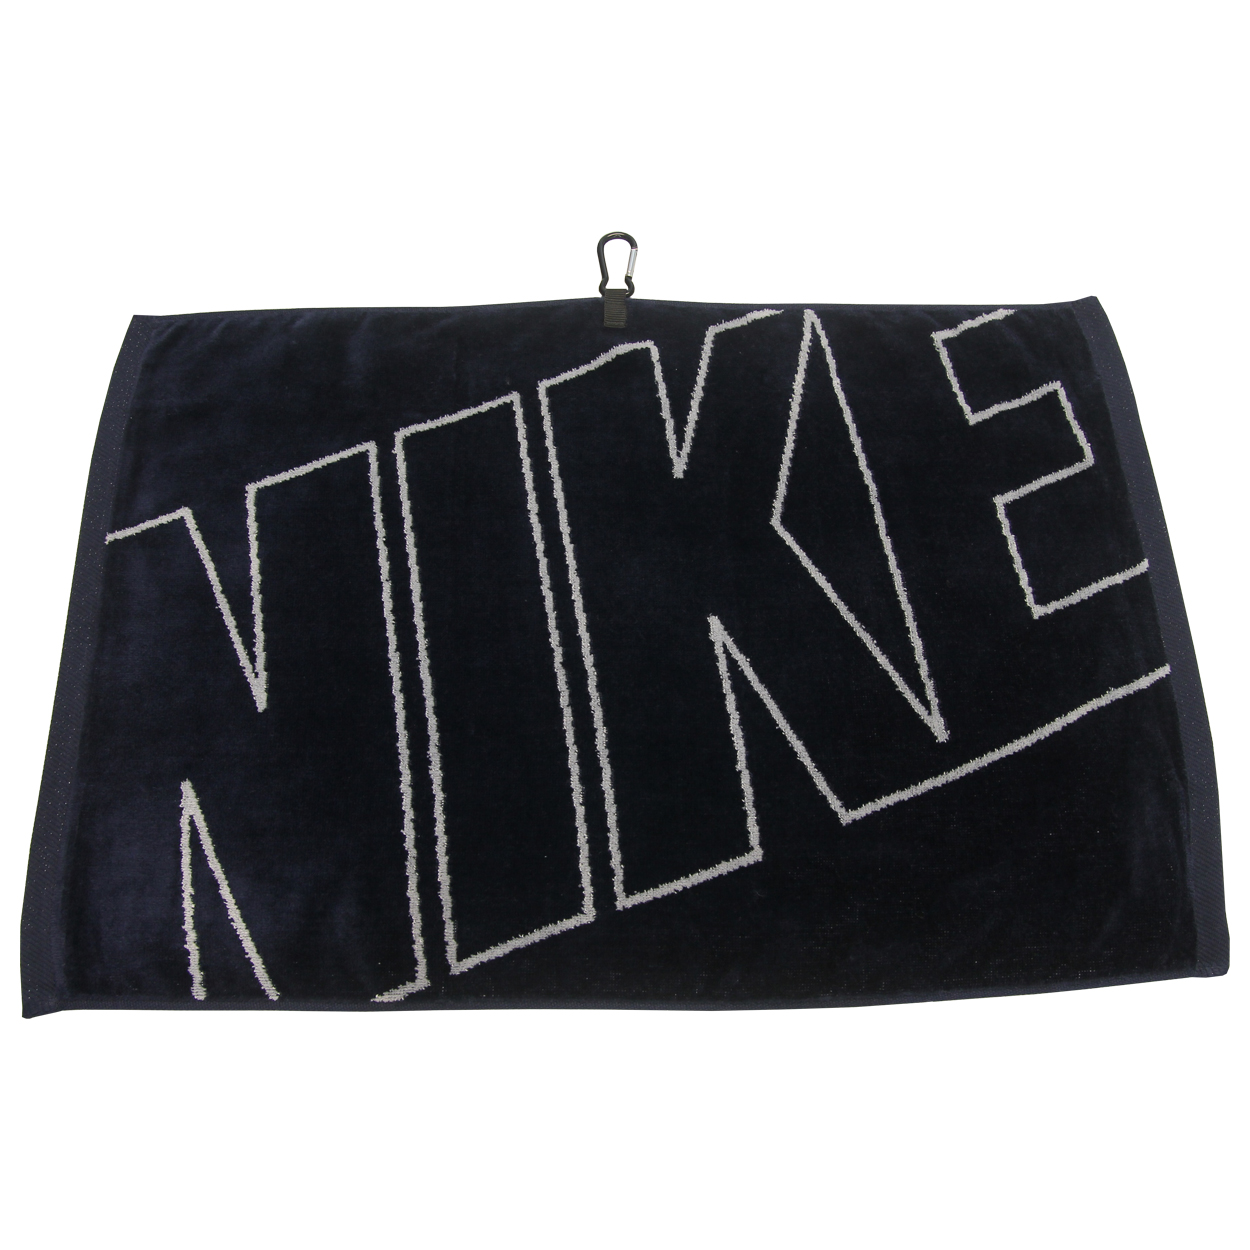 """The Nike Golf 16"""" X 24"""" Jacquard Towel Towel features: Large 16"""" x 24"""" size with carabiner clip. Sheared 100% cotton velour construction. Boasts Nike branding. Wipe down your clubs with style!"""